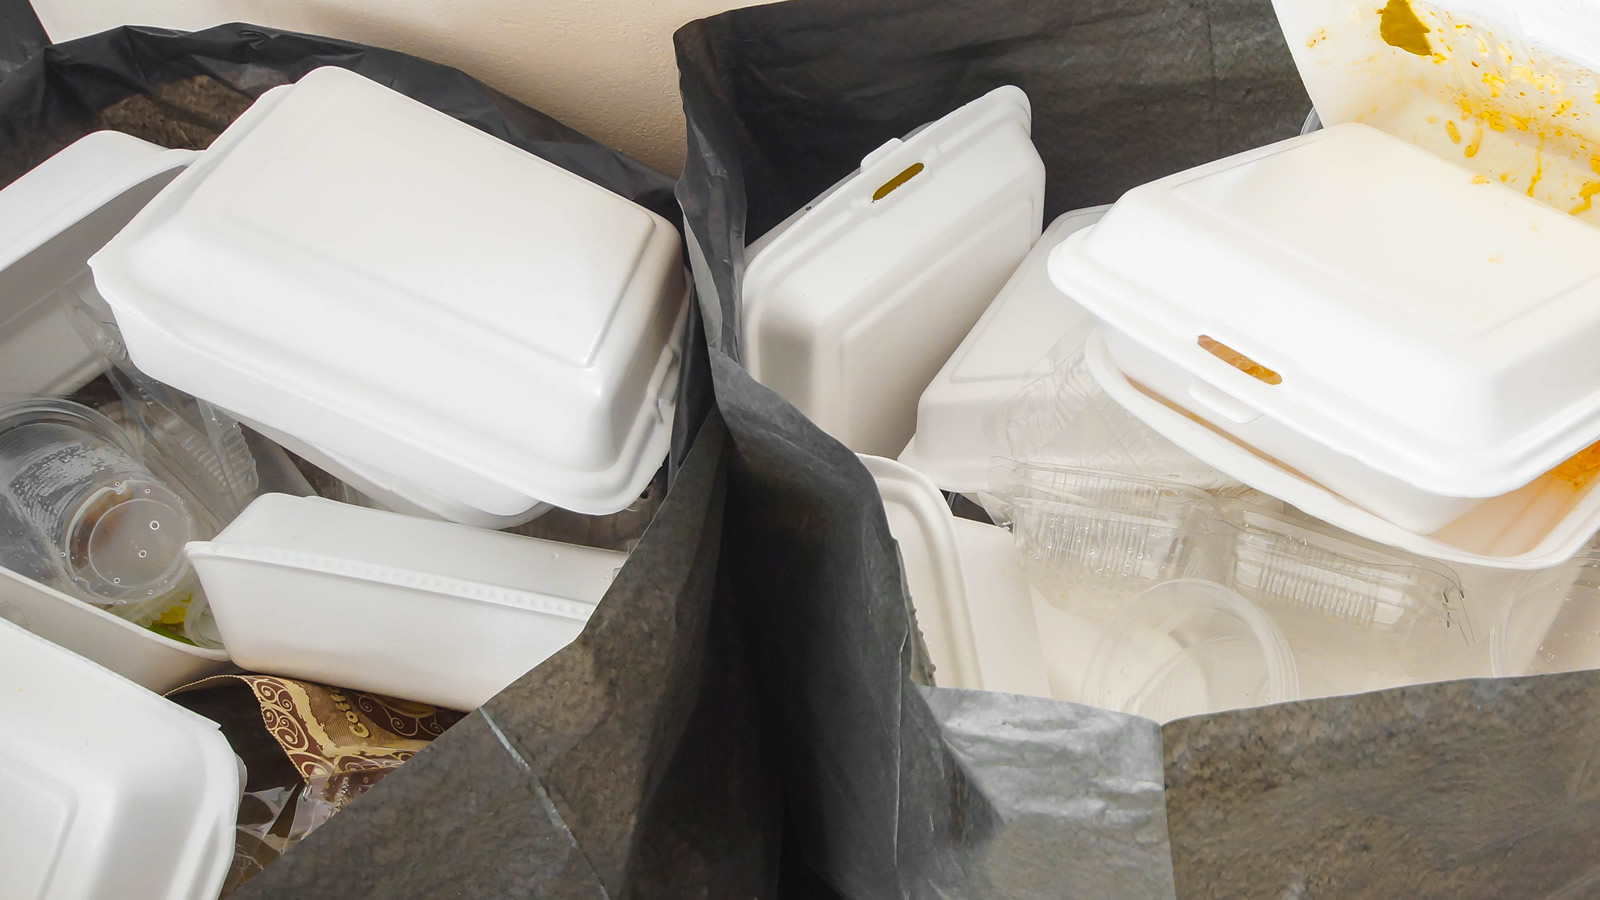 <h4>POLLUTION THAT LASTS FOR HUNDREDS OF YEARS</h4><h5>Polystyrene foam breaks apart easily, but it persists in the environment in tiny particles -- and every bit of it ever made is still out there and could continue to threaten wildlife for hundreds of years to come.</h5><em>wk1003mike / Shutterstock</em>